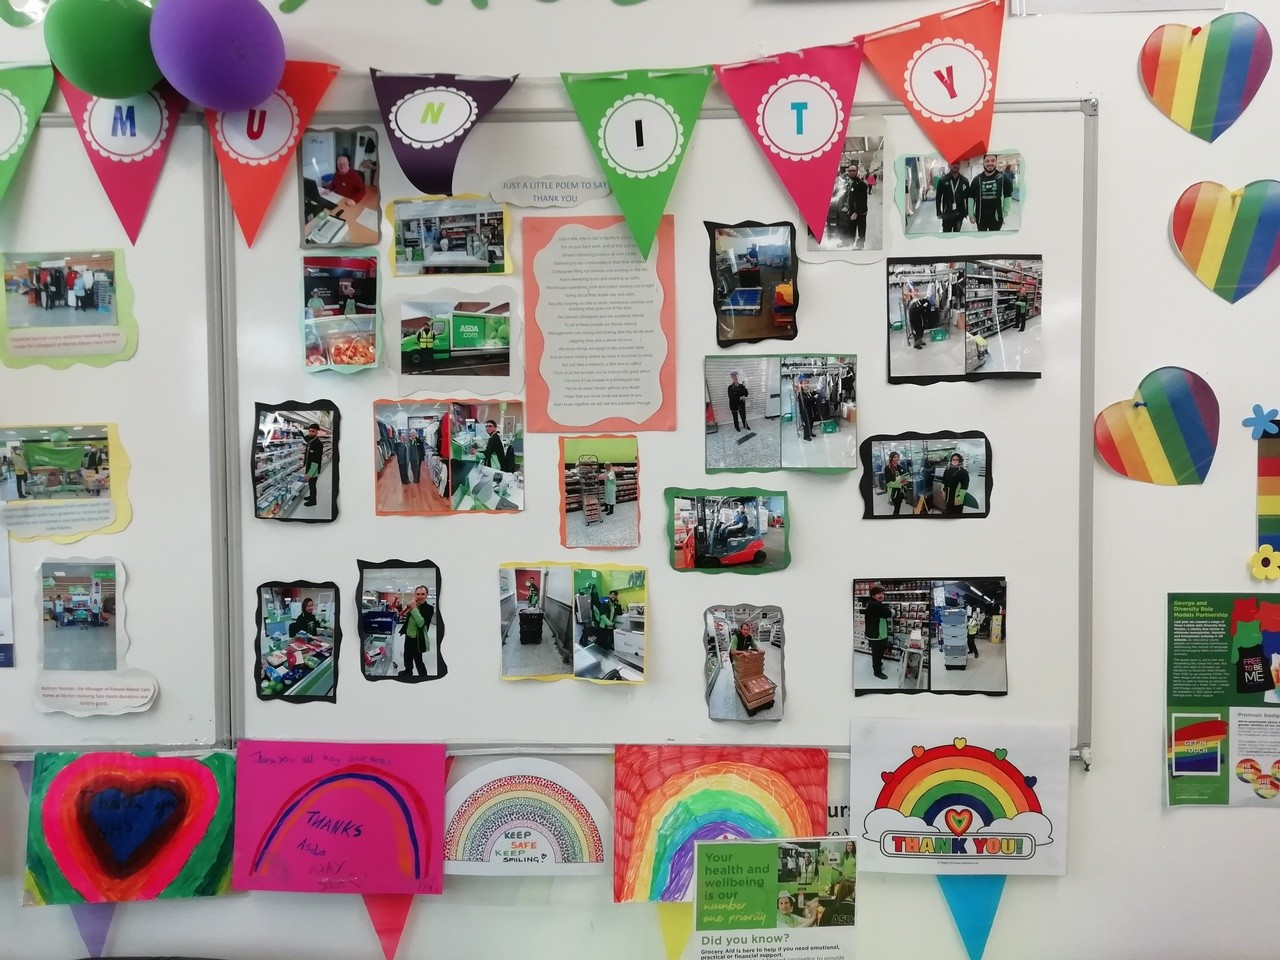 Thank you to colleagues | Asda Morley